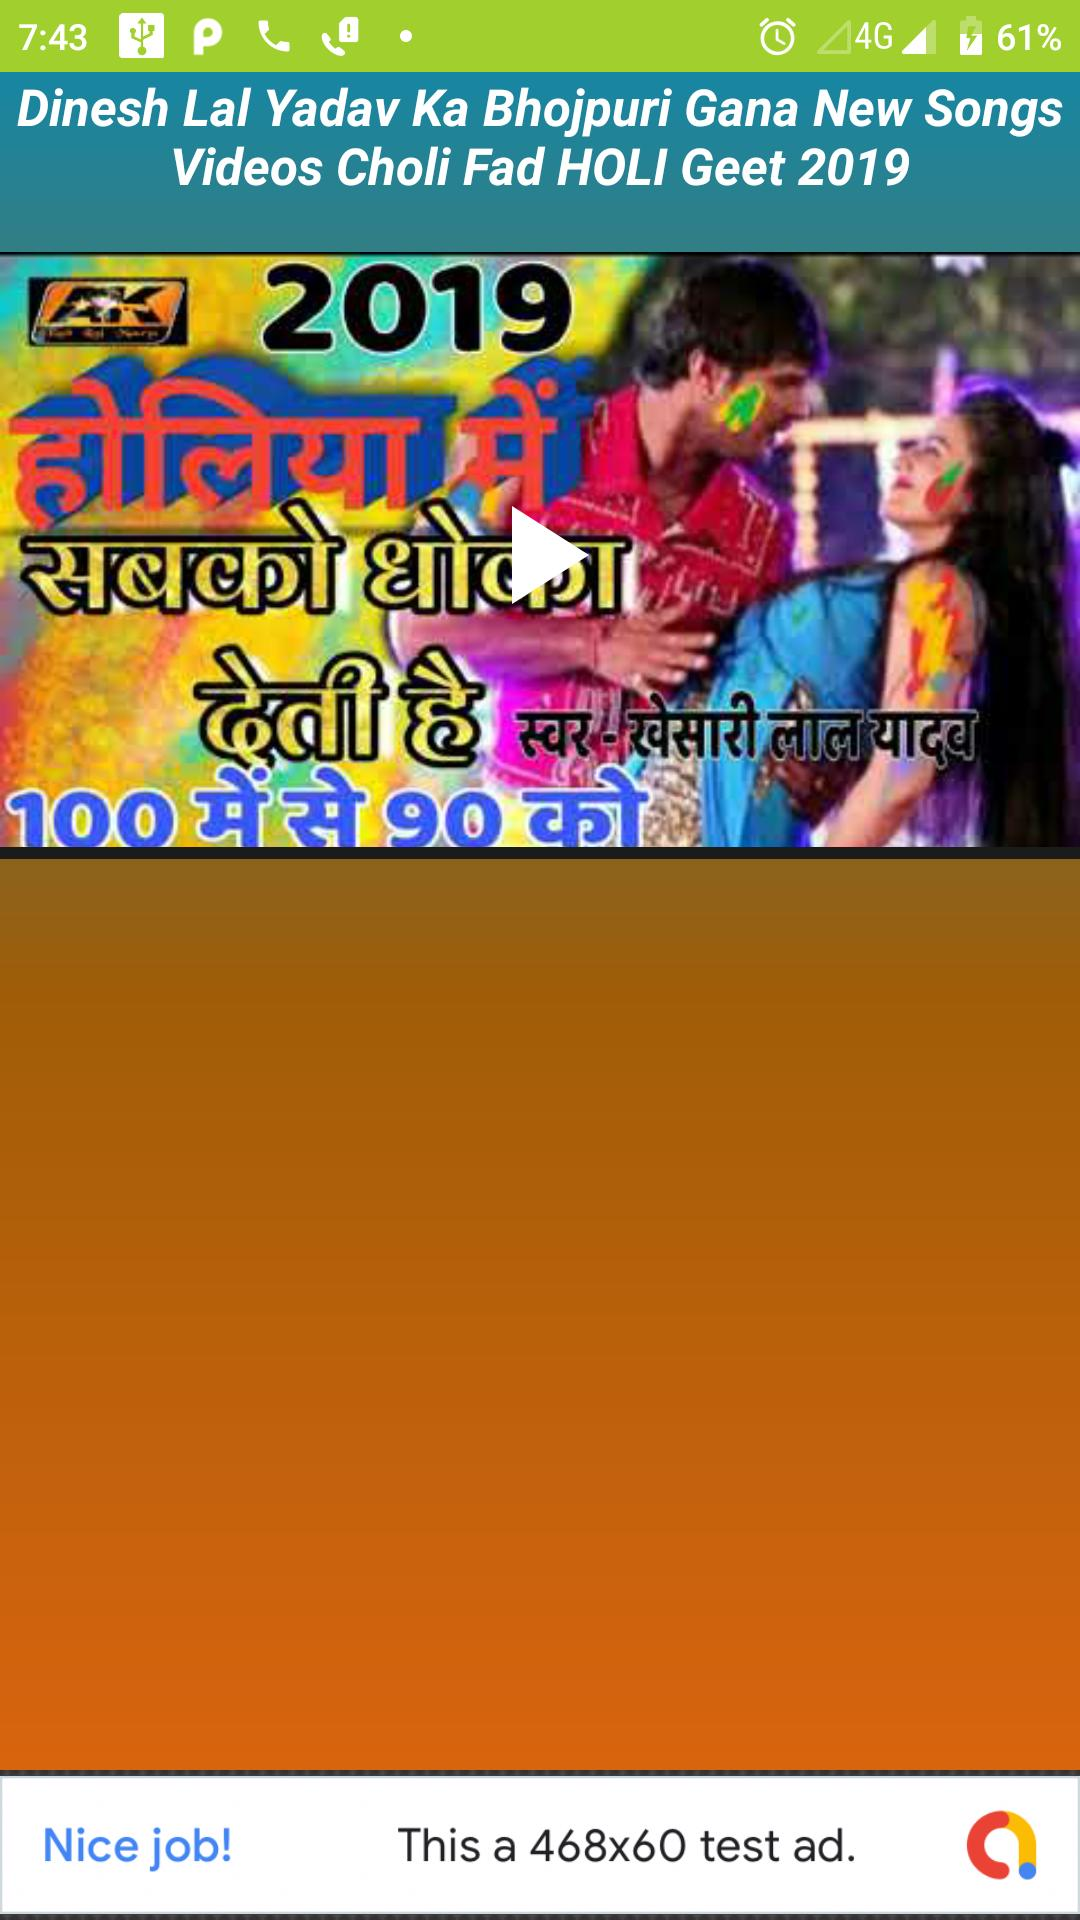 Dinesh Lal Yadav Ka Bhojpuri Gana New Songs Video for Android - APK Download